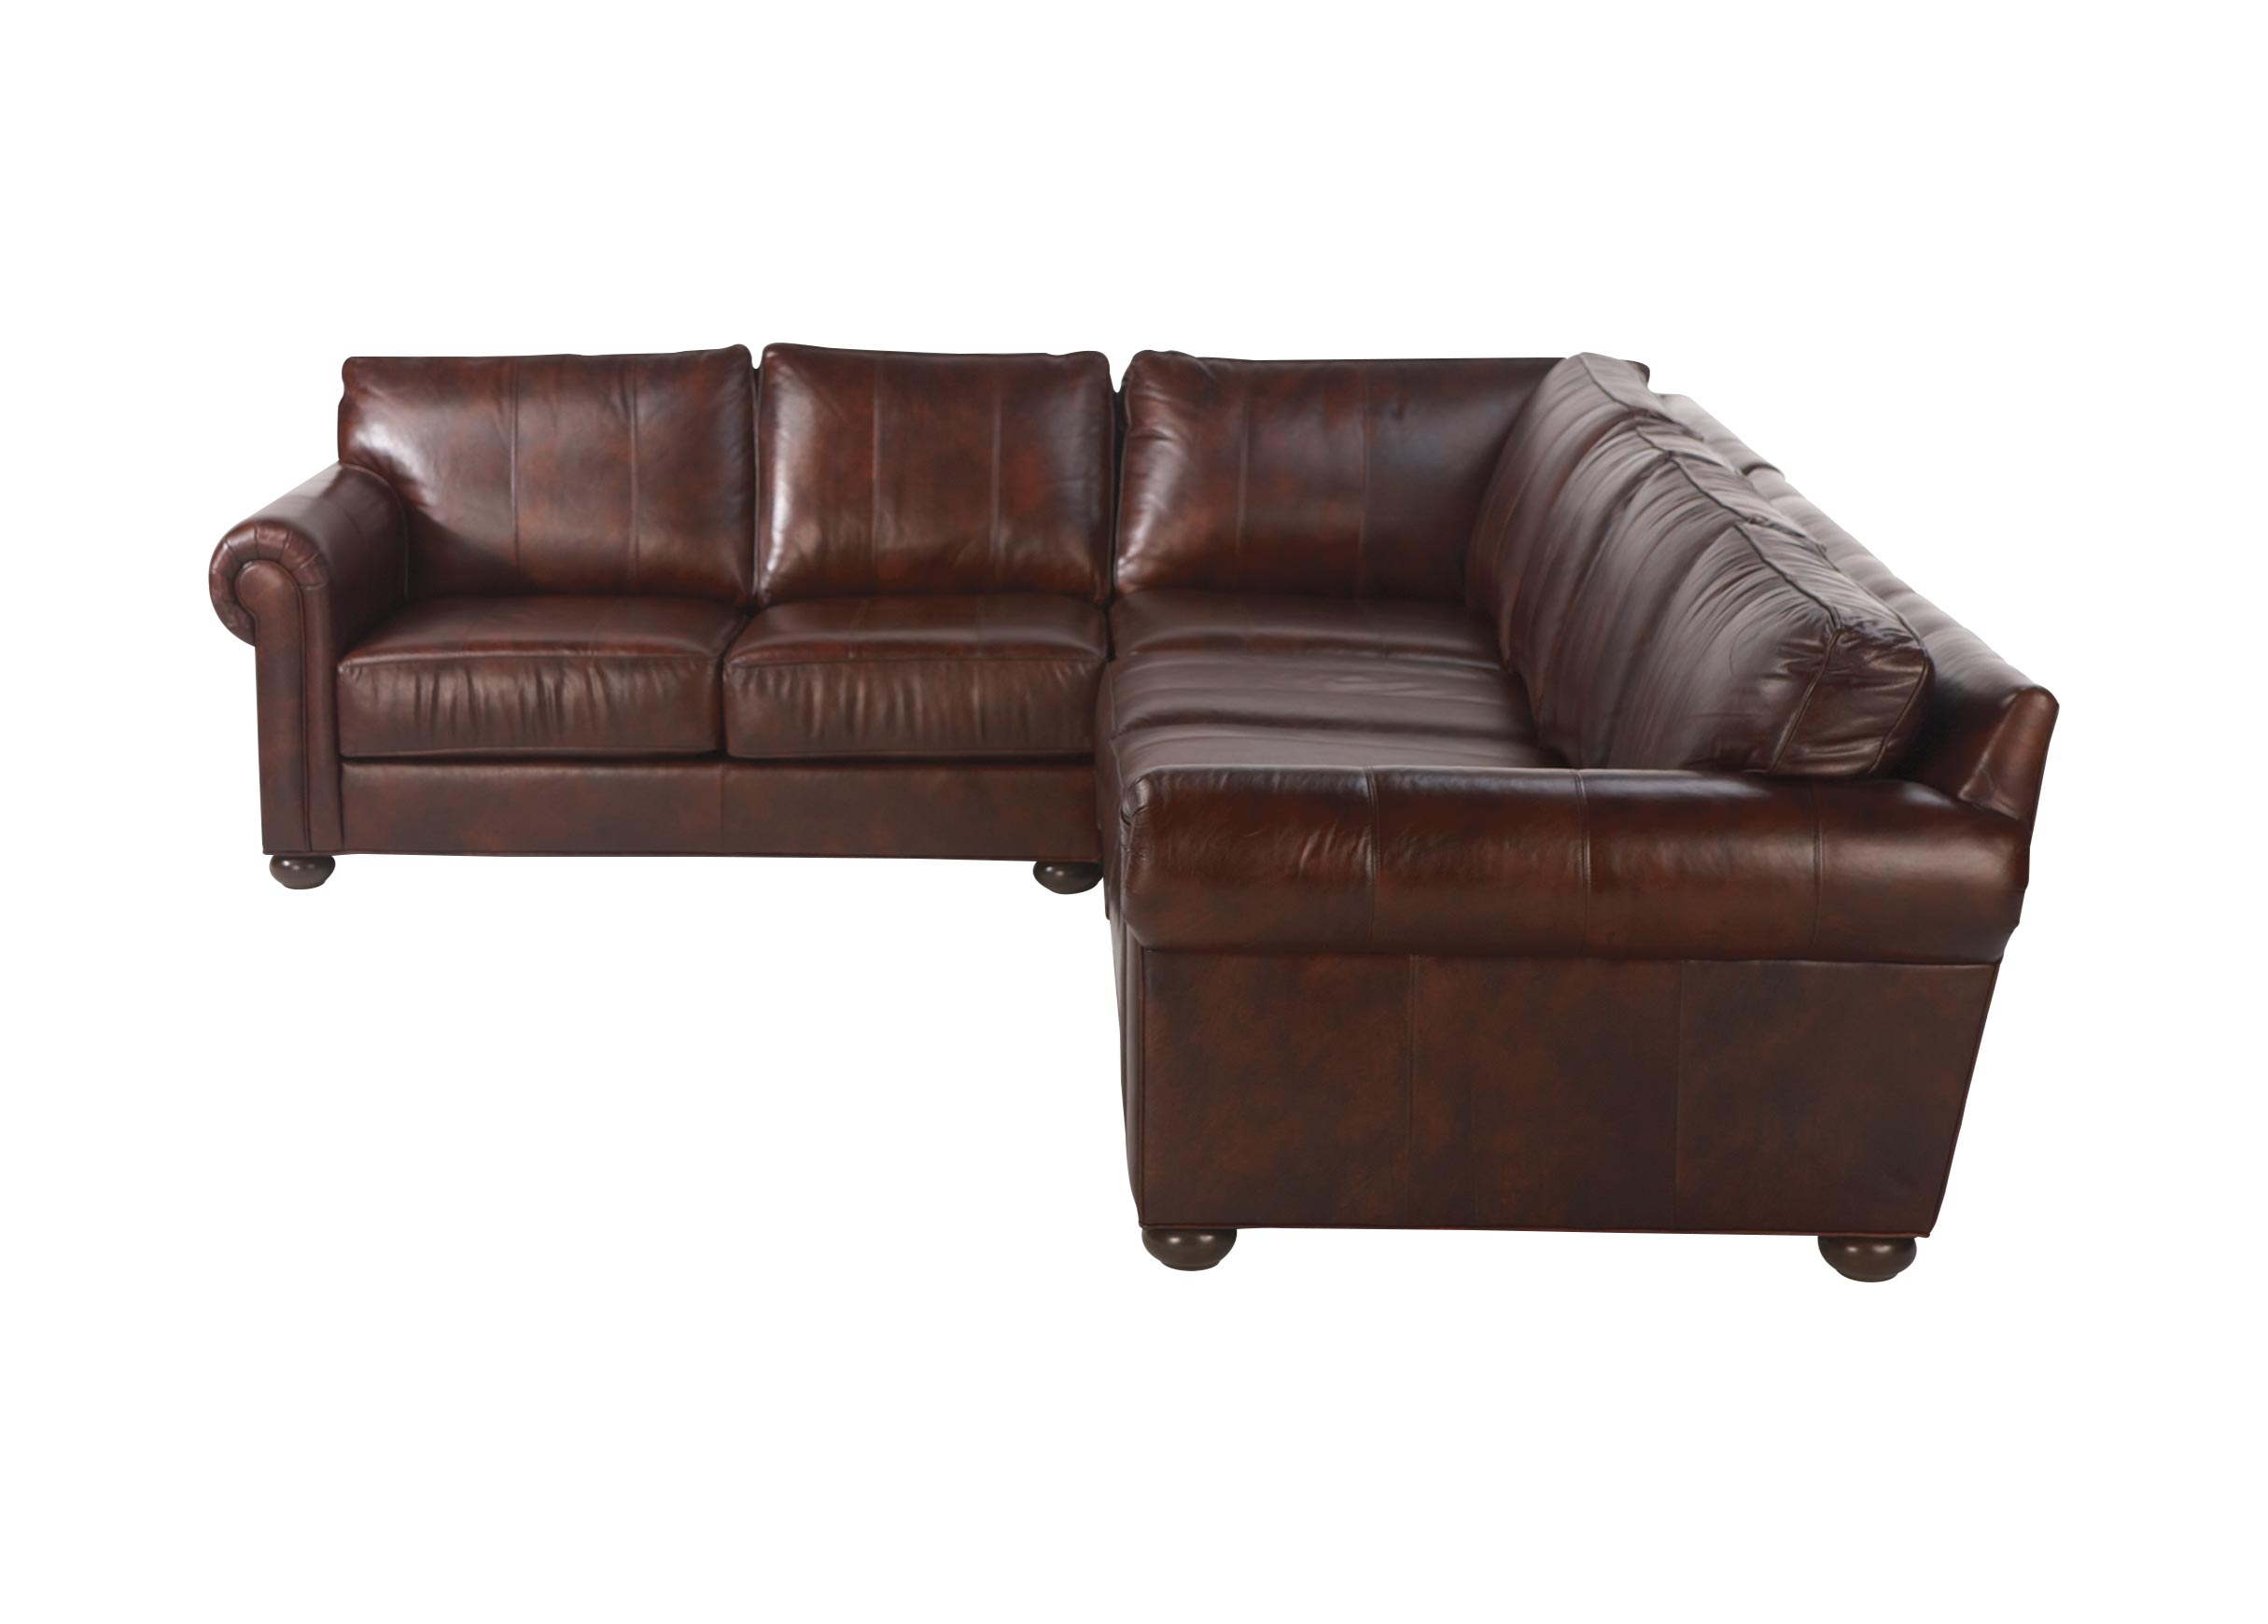 Ethan allen bennett sofa with chaise 1025thepartycom for Ethan allen sectional sofa with chaise